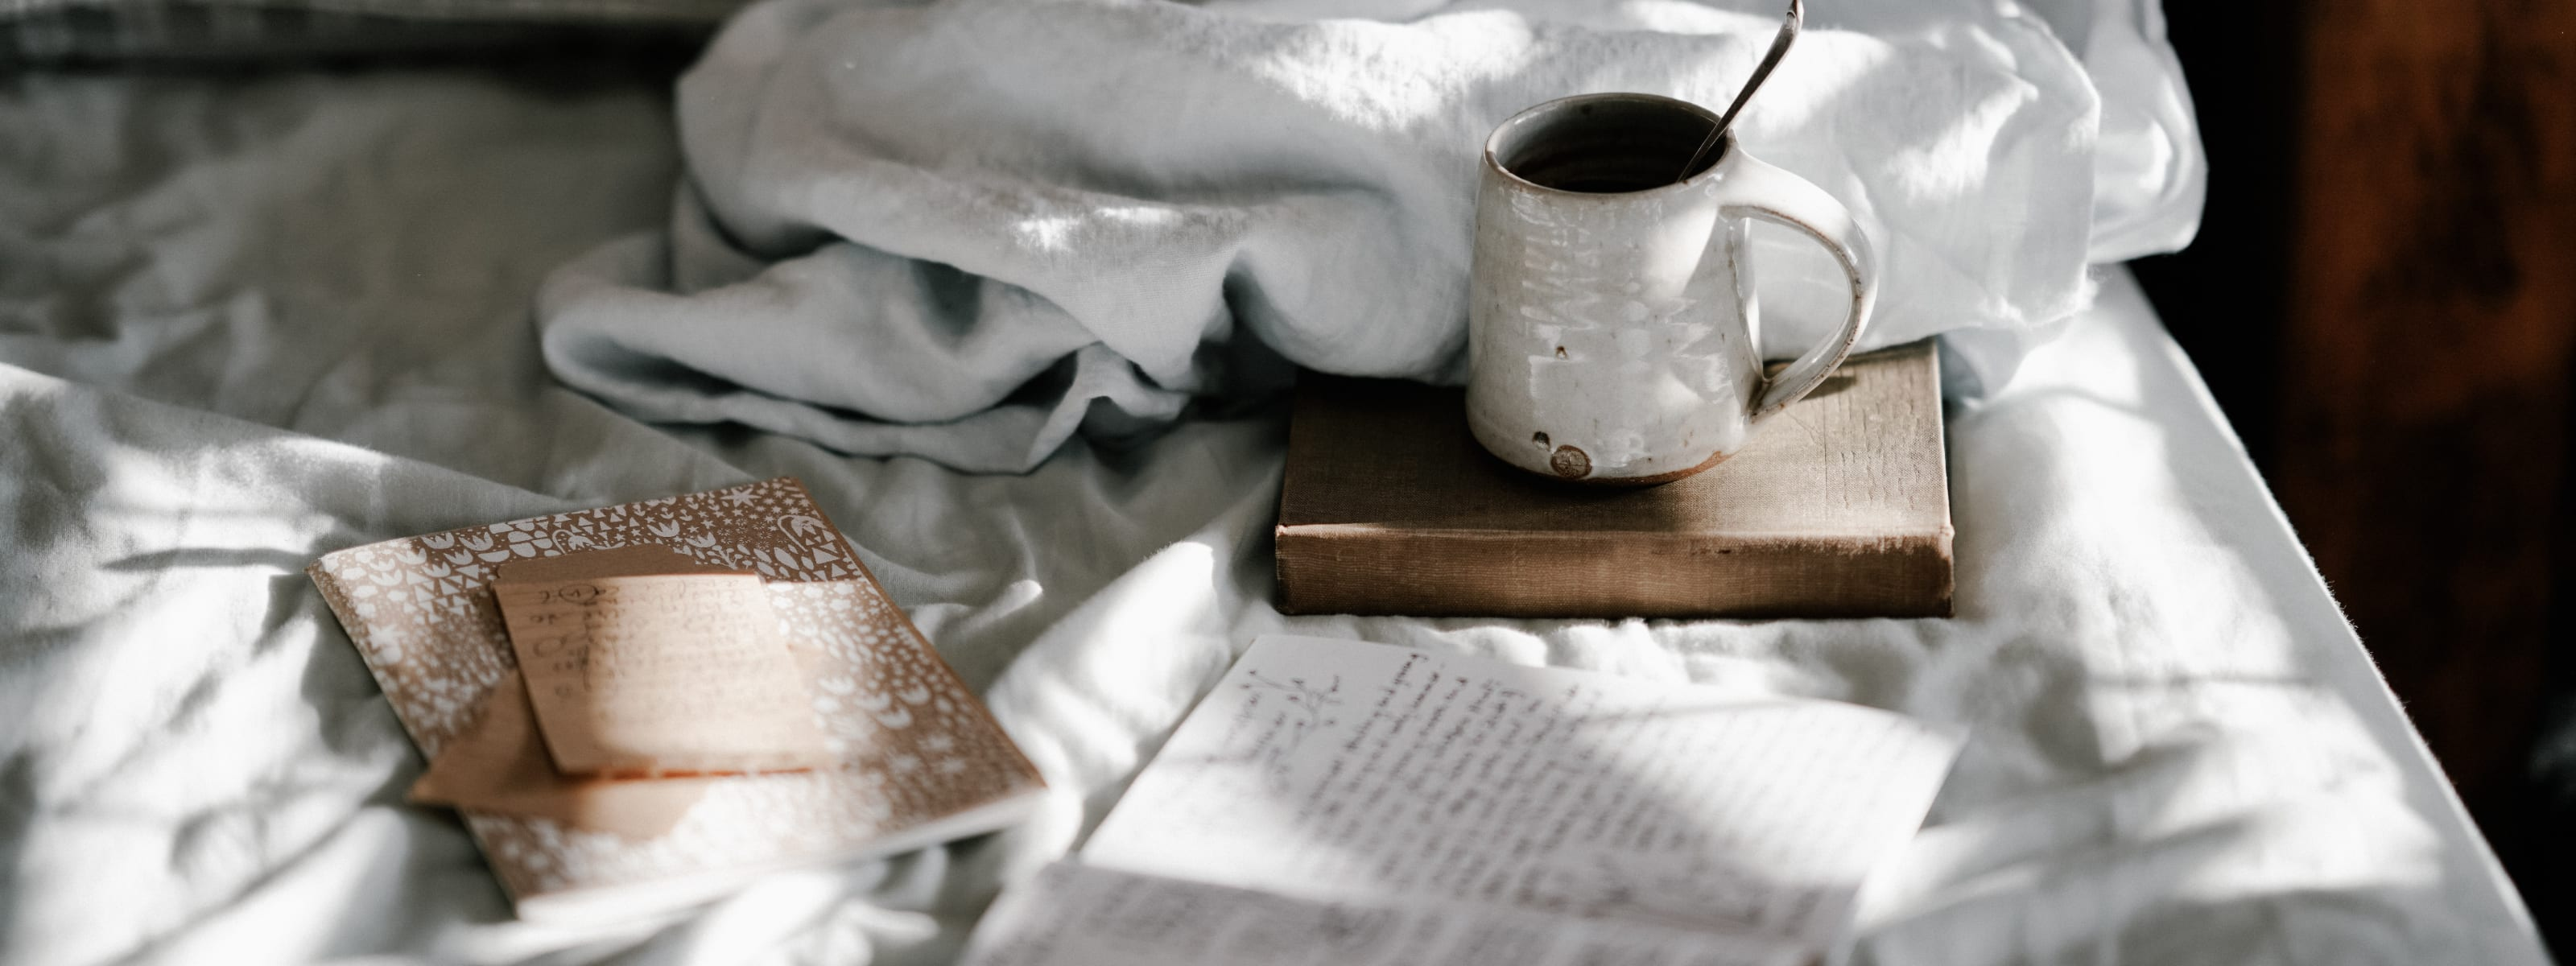 Coffee, journal, and bedsheets